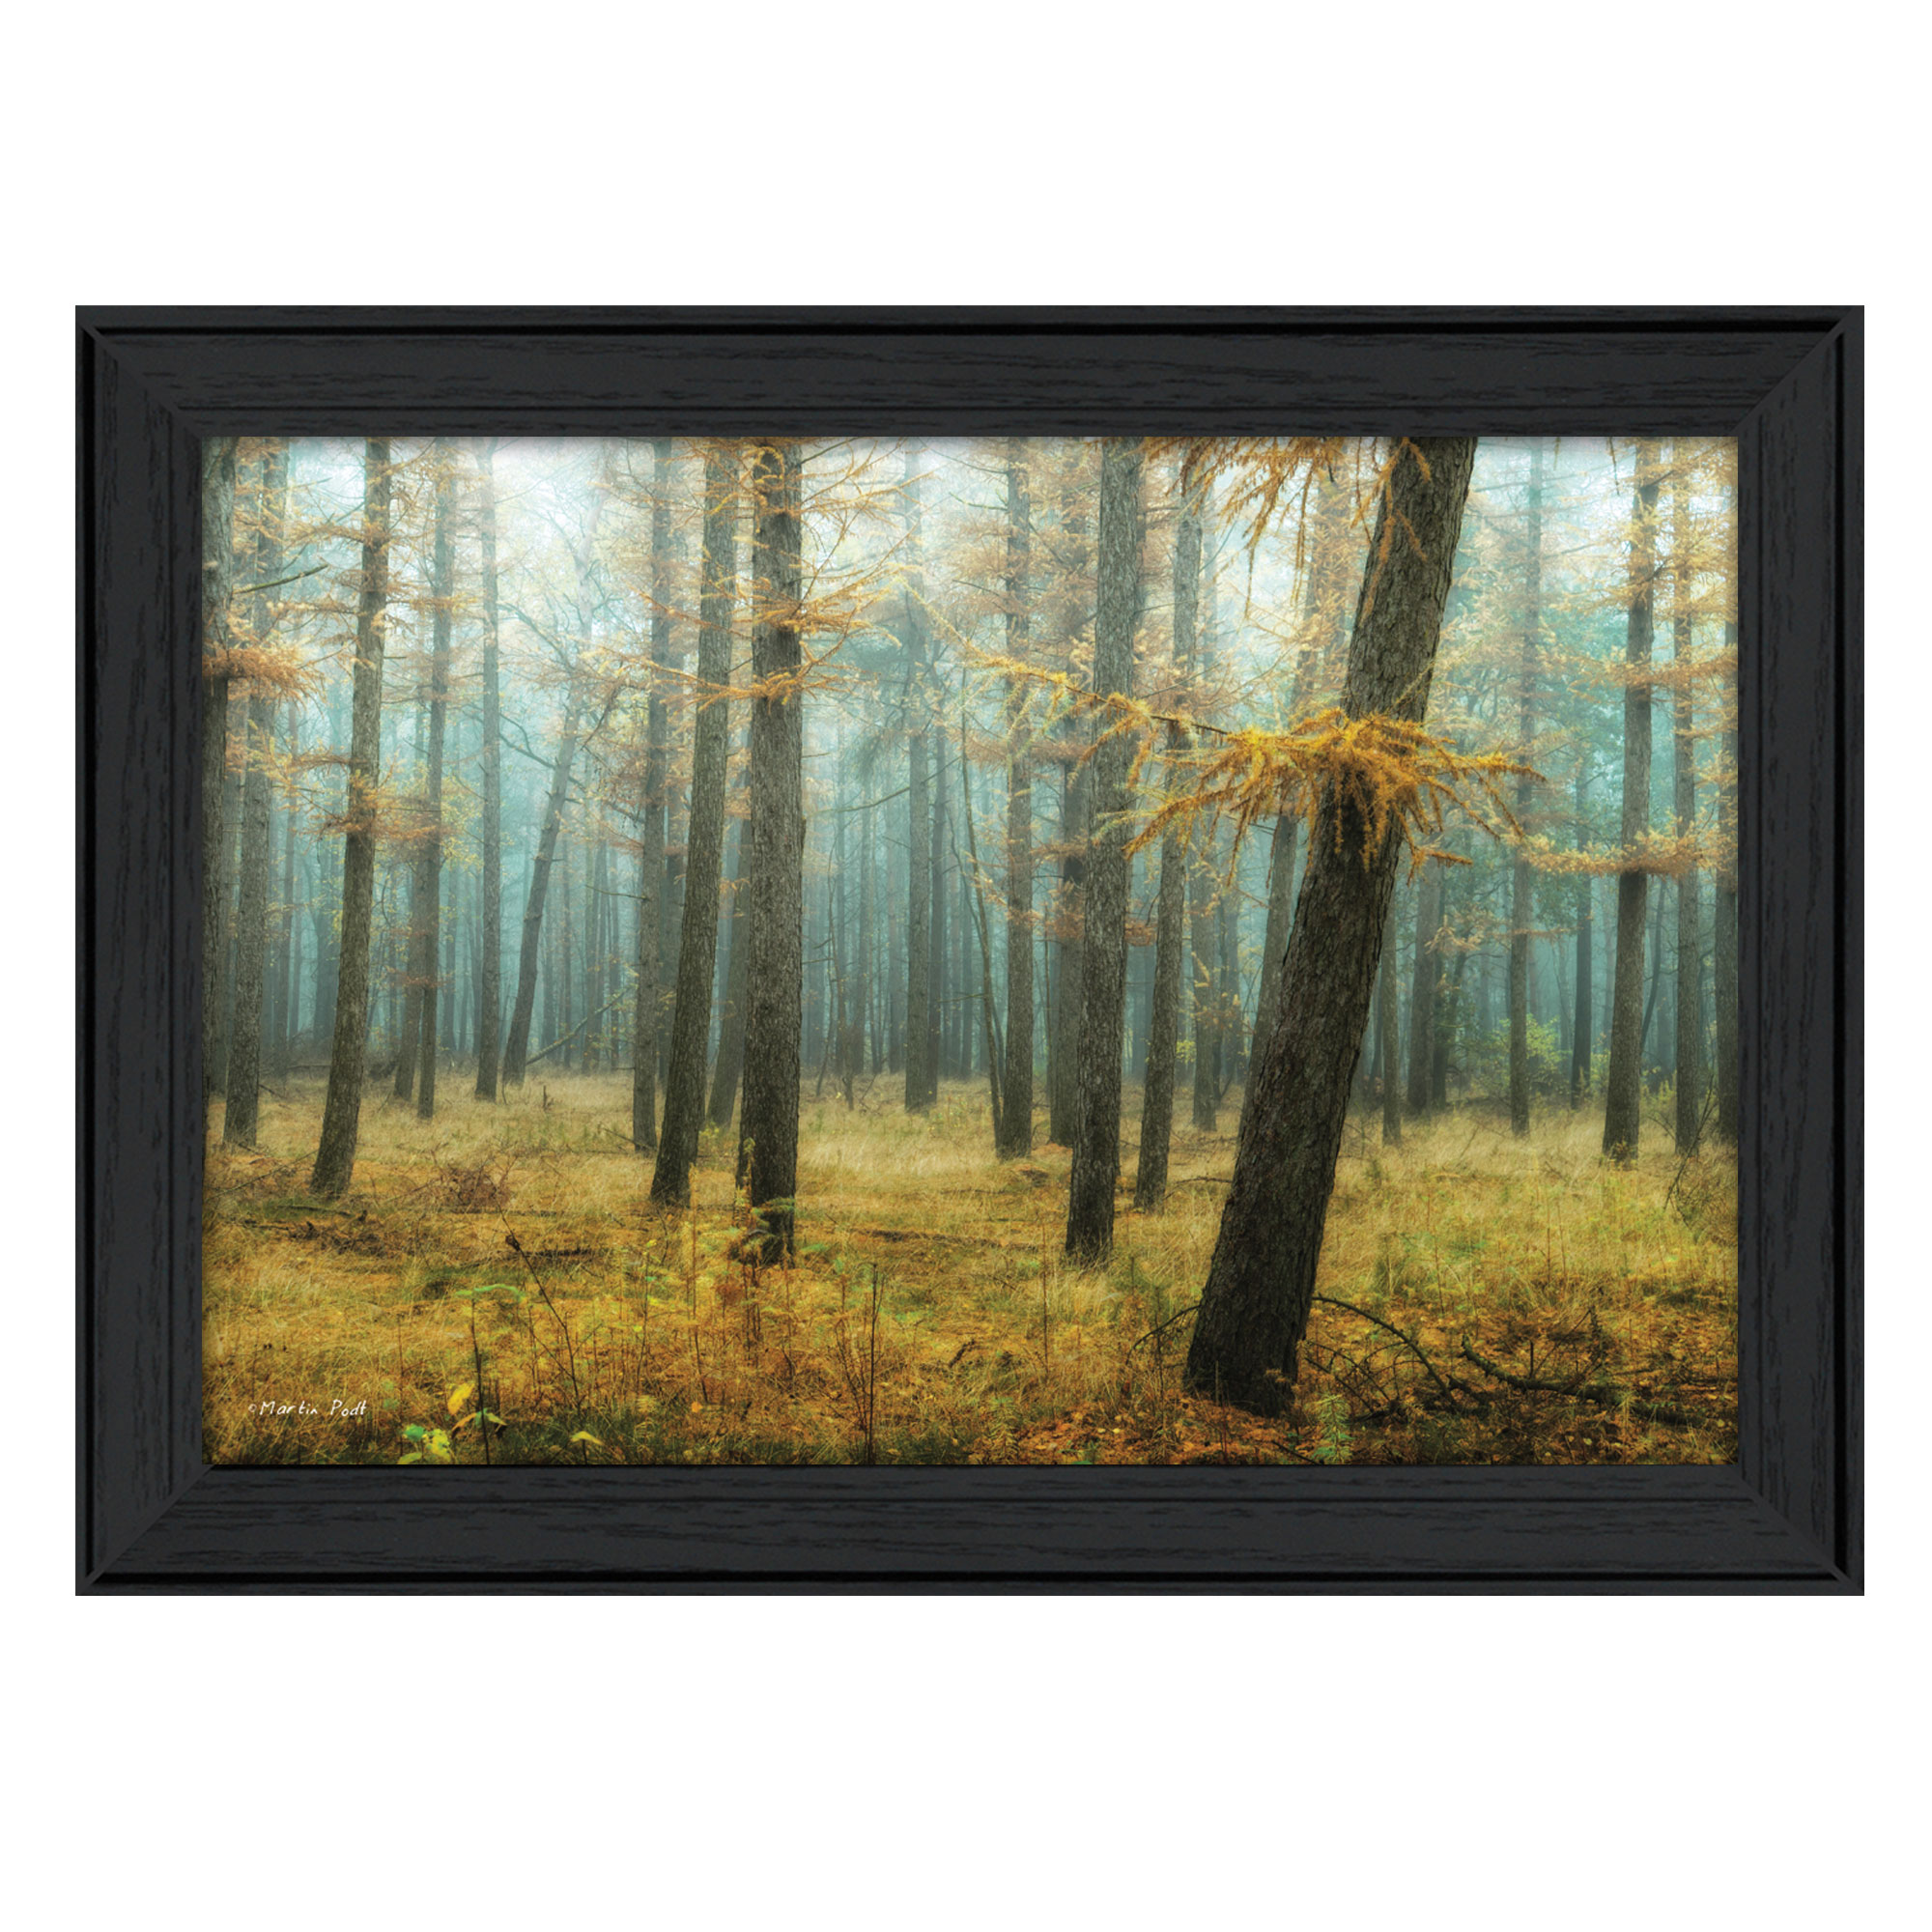 Holterberg in the Mist  by Martin Podt Printed Framed Wall Art